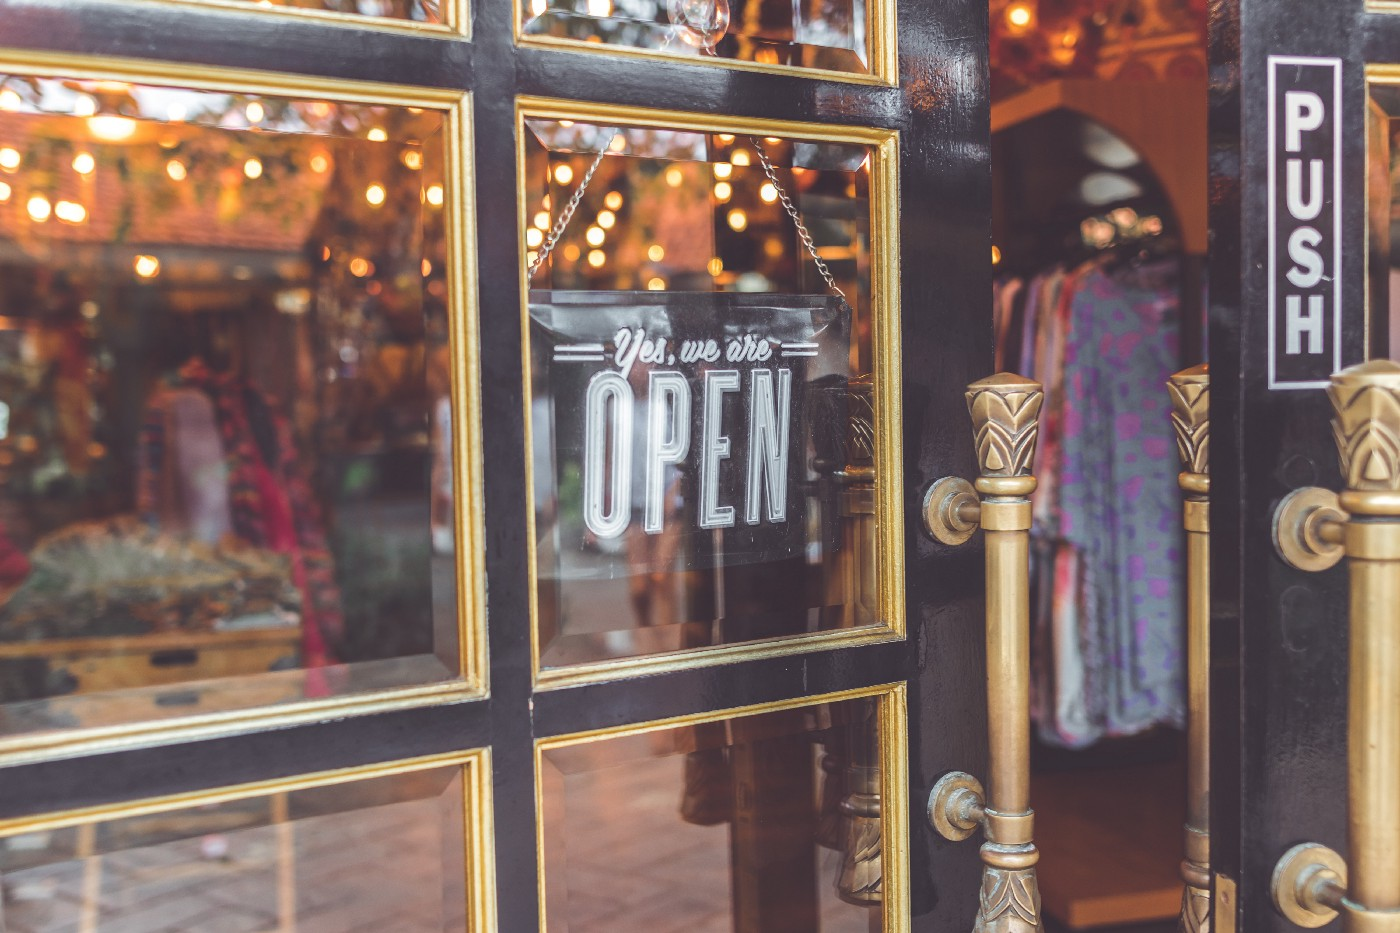 Support local businesses by shopping local